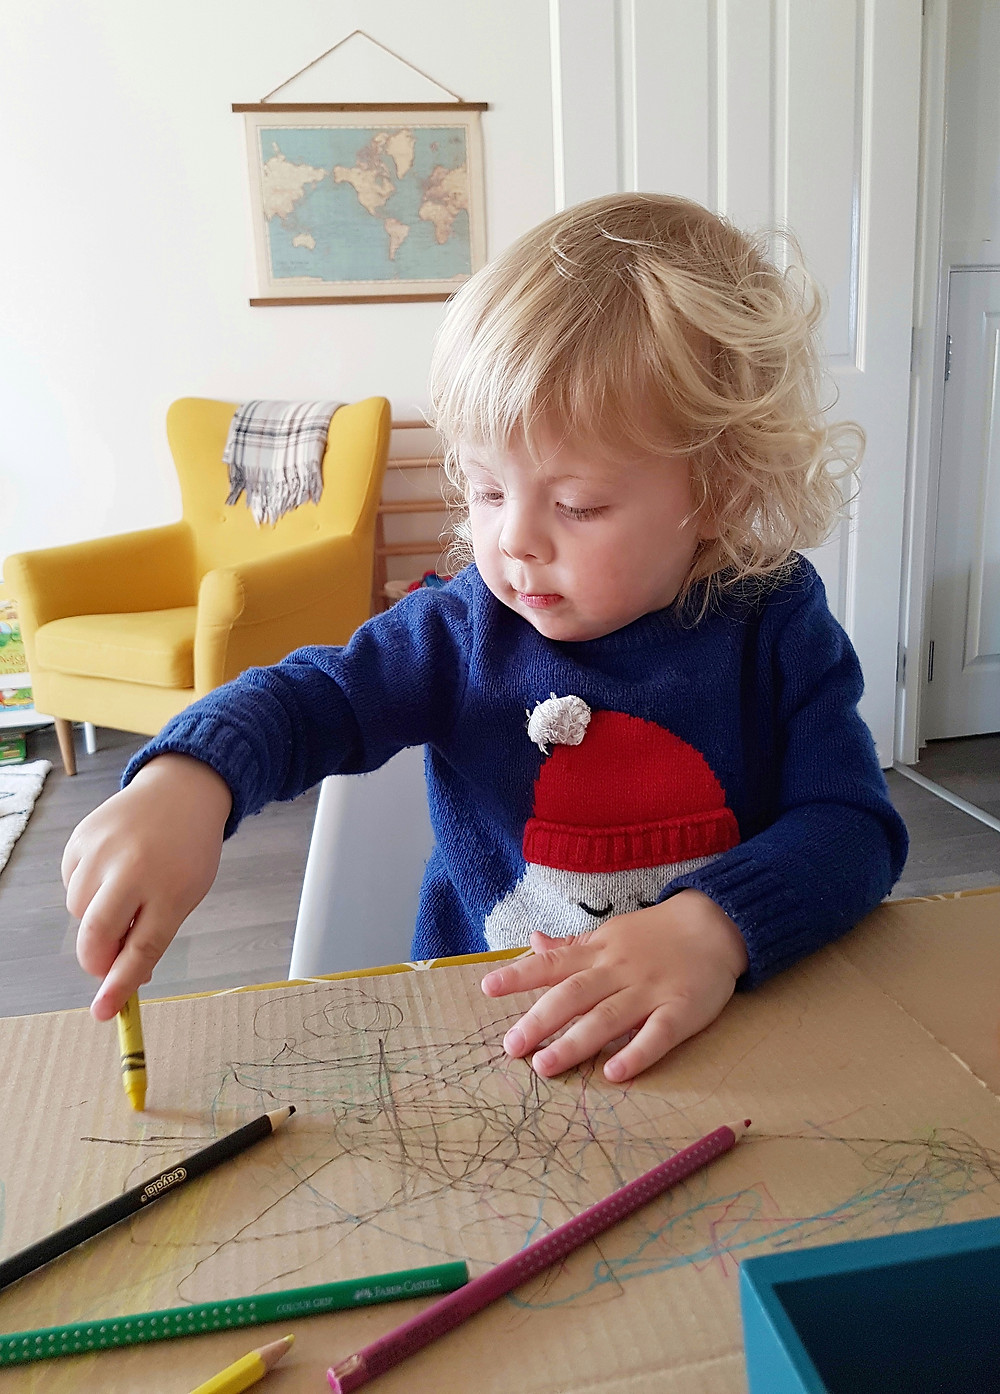 blonde toddler drawing on cardboard with yellow crayon